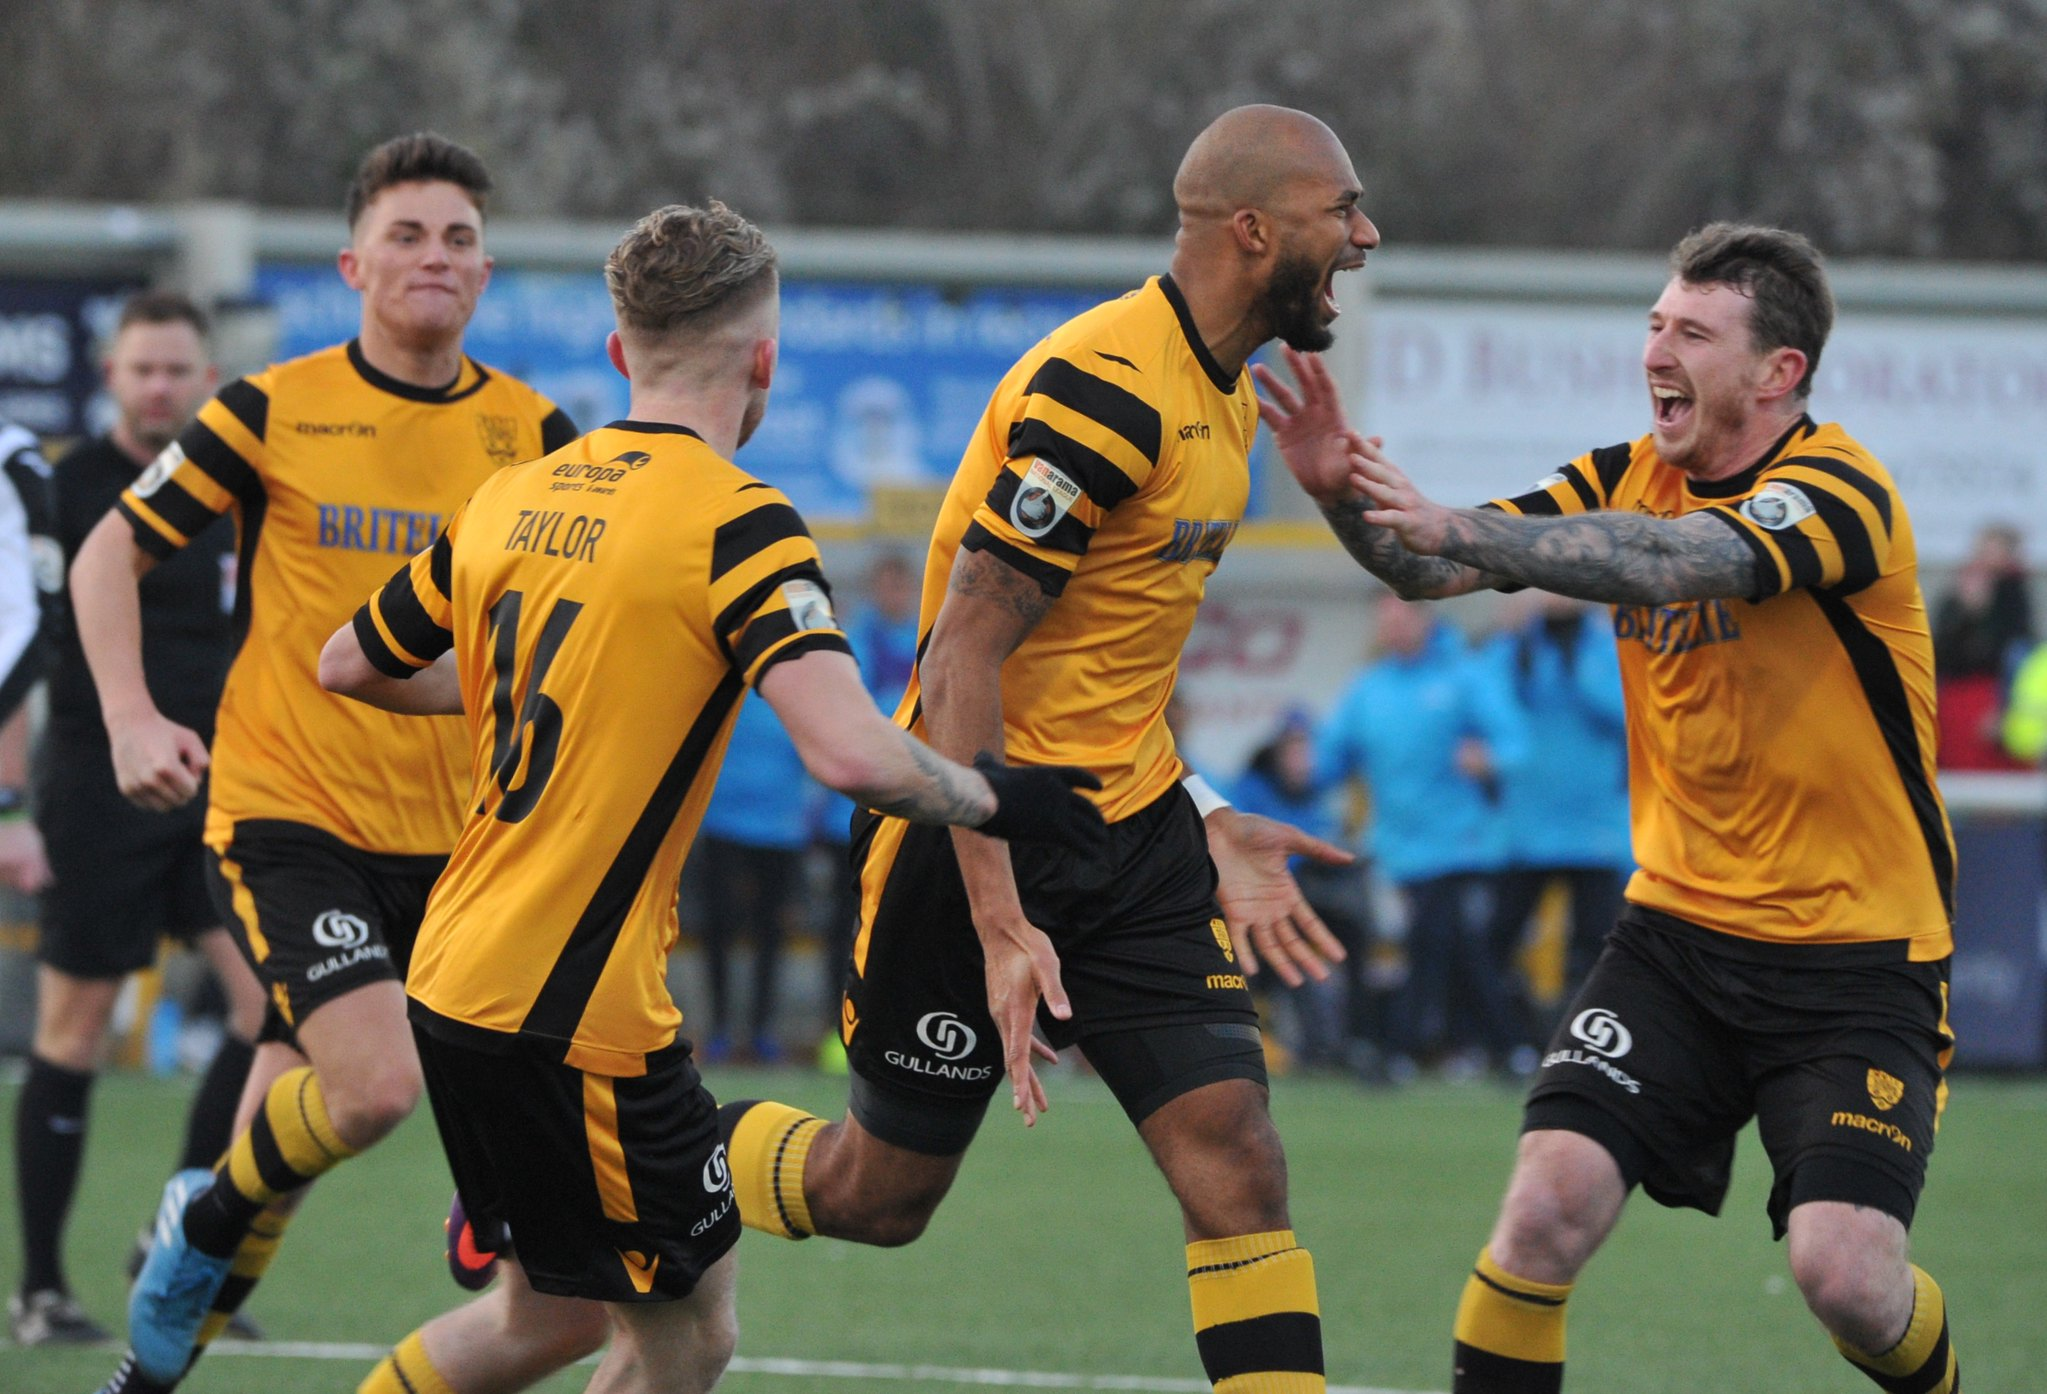 Maidstone United v Torquay United 319